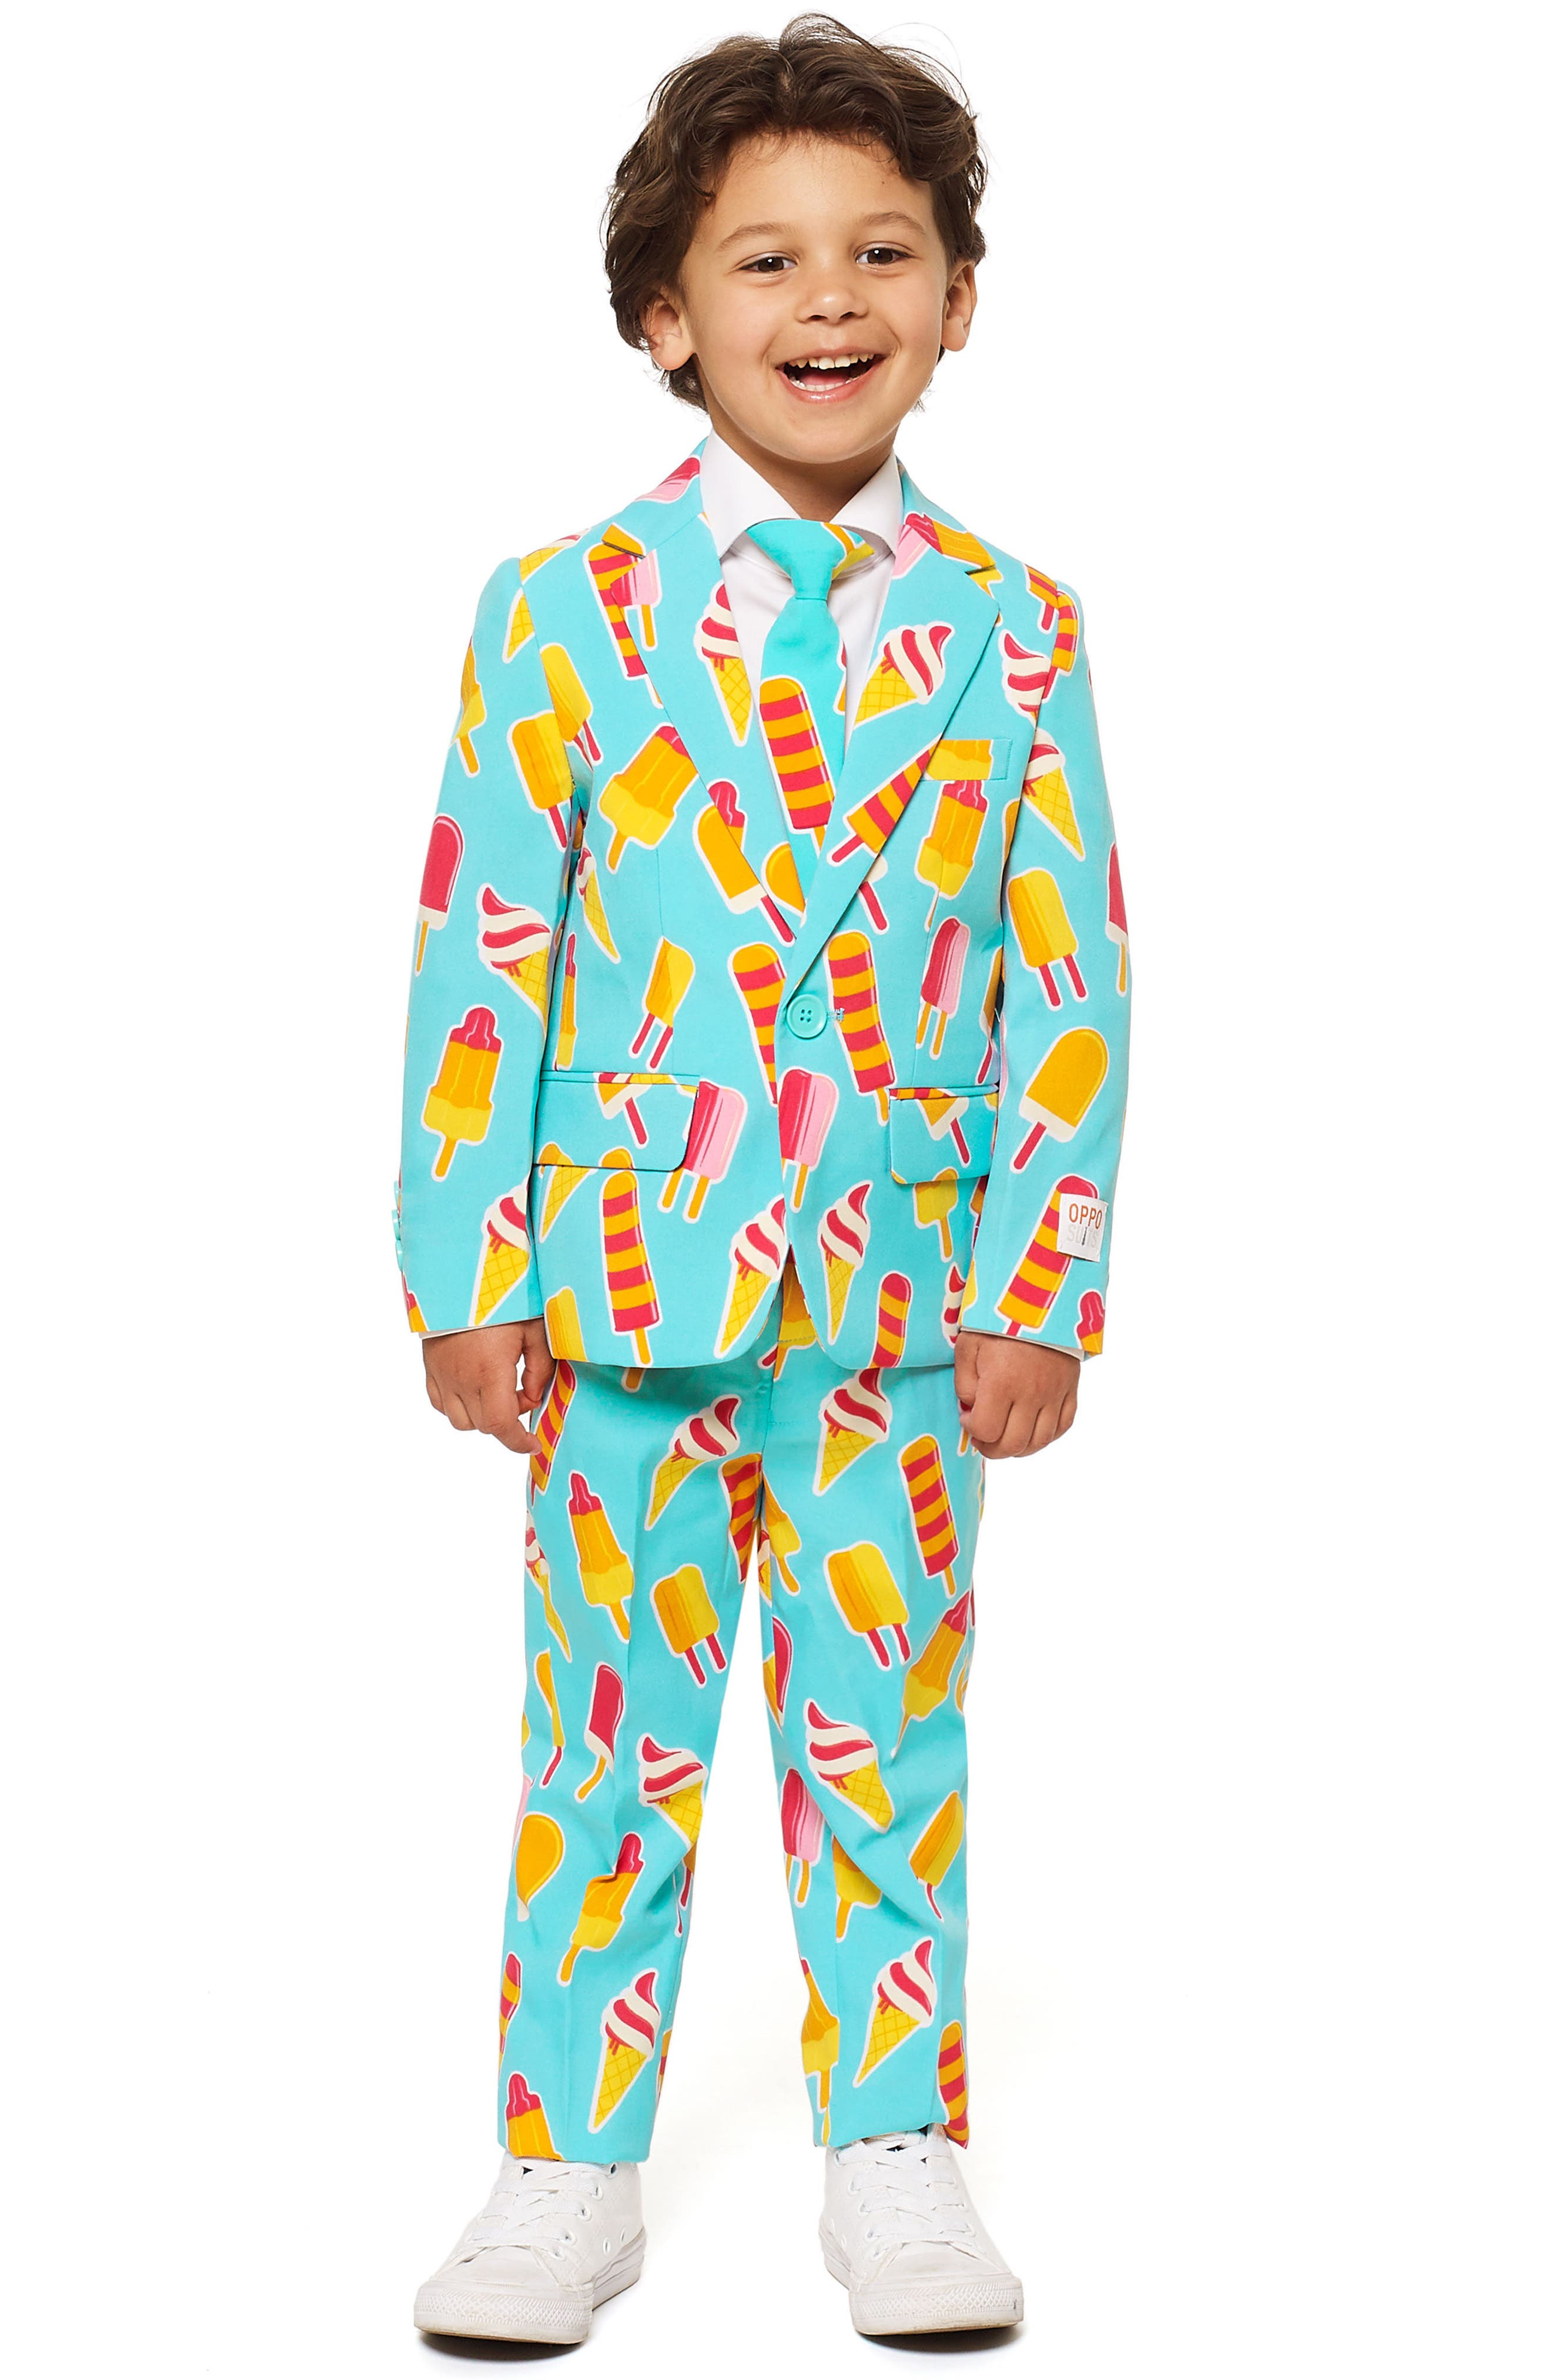 OPPOSUITS,                             Cool Cones Two-Piece Suit with Tie,                             Main thumbnail 1, color,                             BLUE